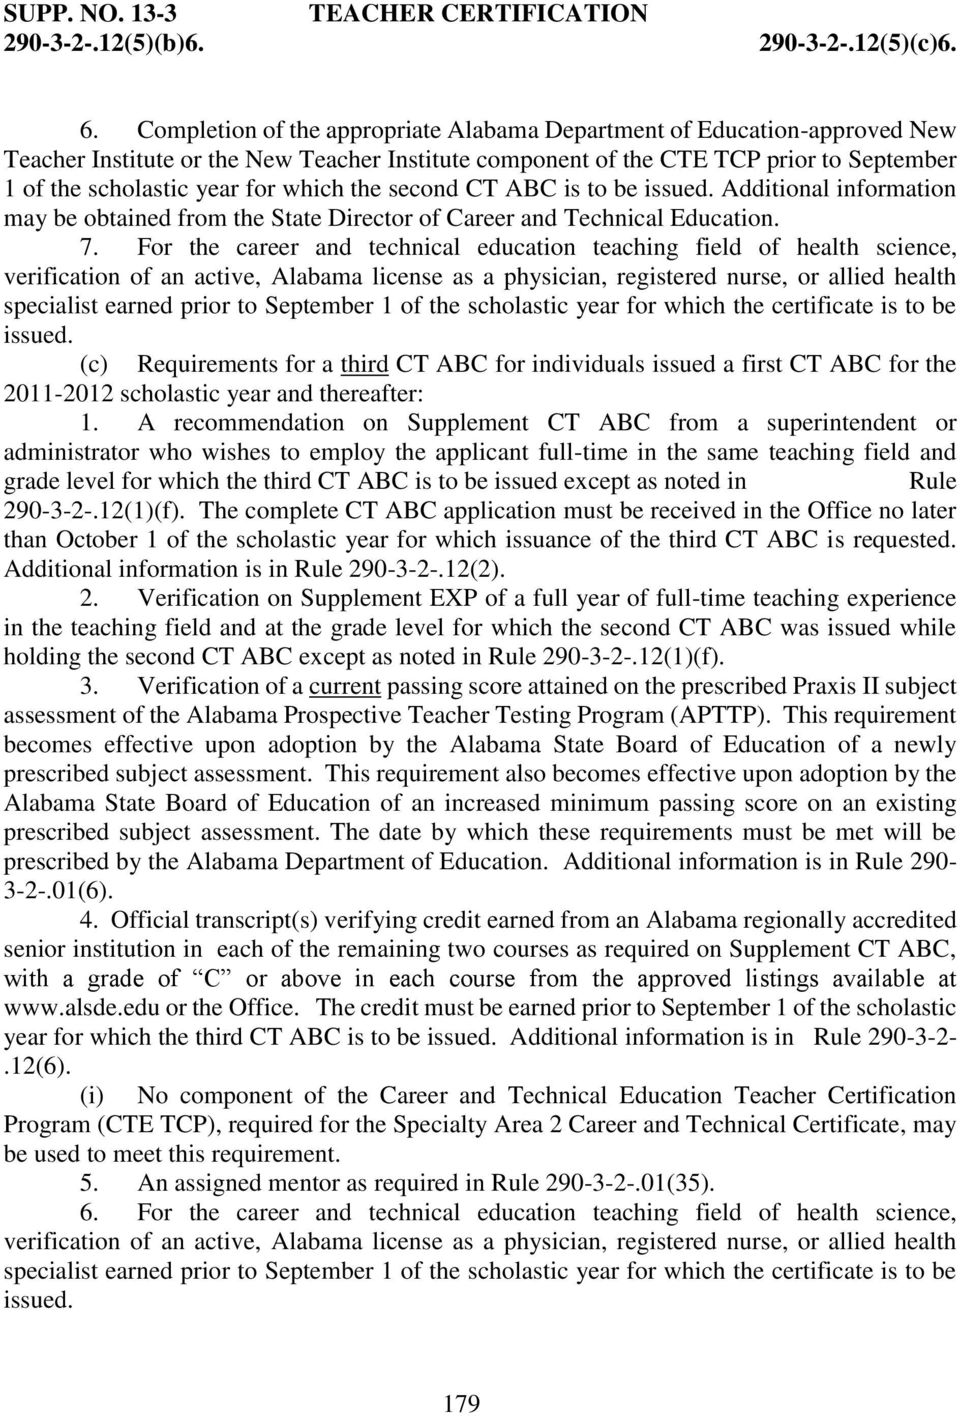 which the second CT ABC is to be issued. Additional information may be obtained from the State Director of Career and Technical Education. 7.